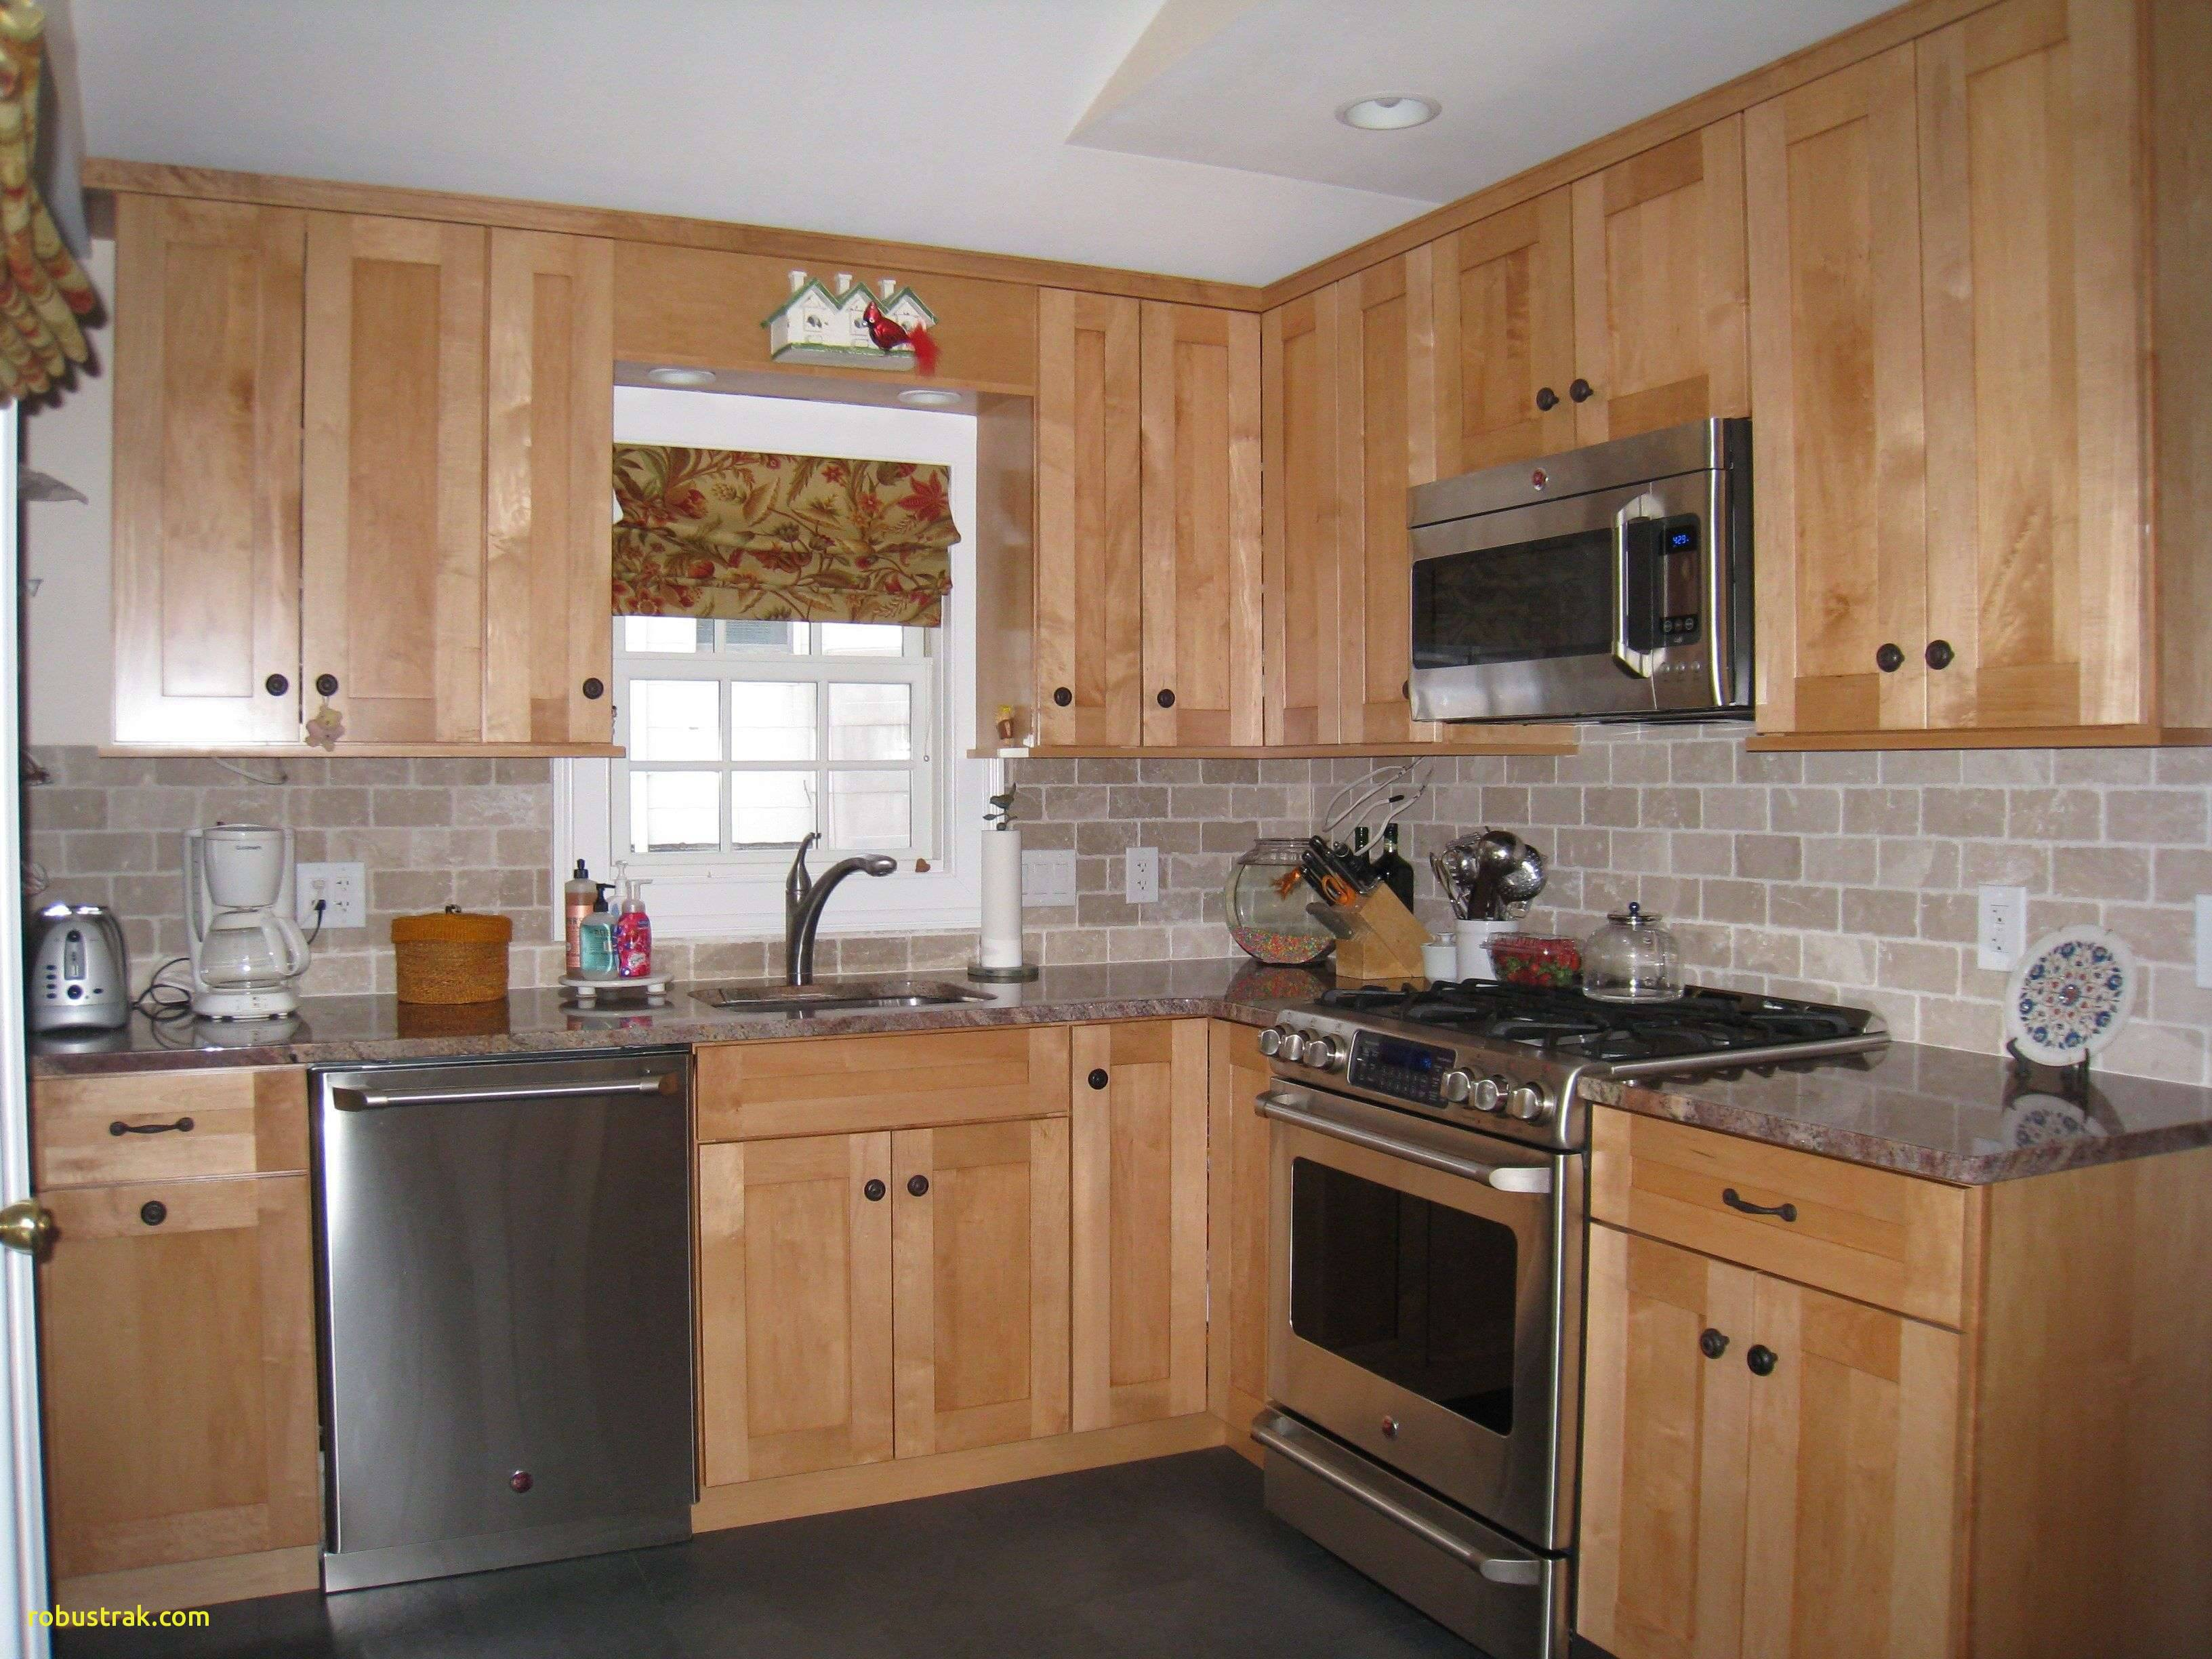 elegant backsplash ideas for maple cabinets of pictures of kitchen backsplashes with maple cabinets